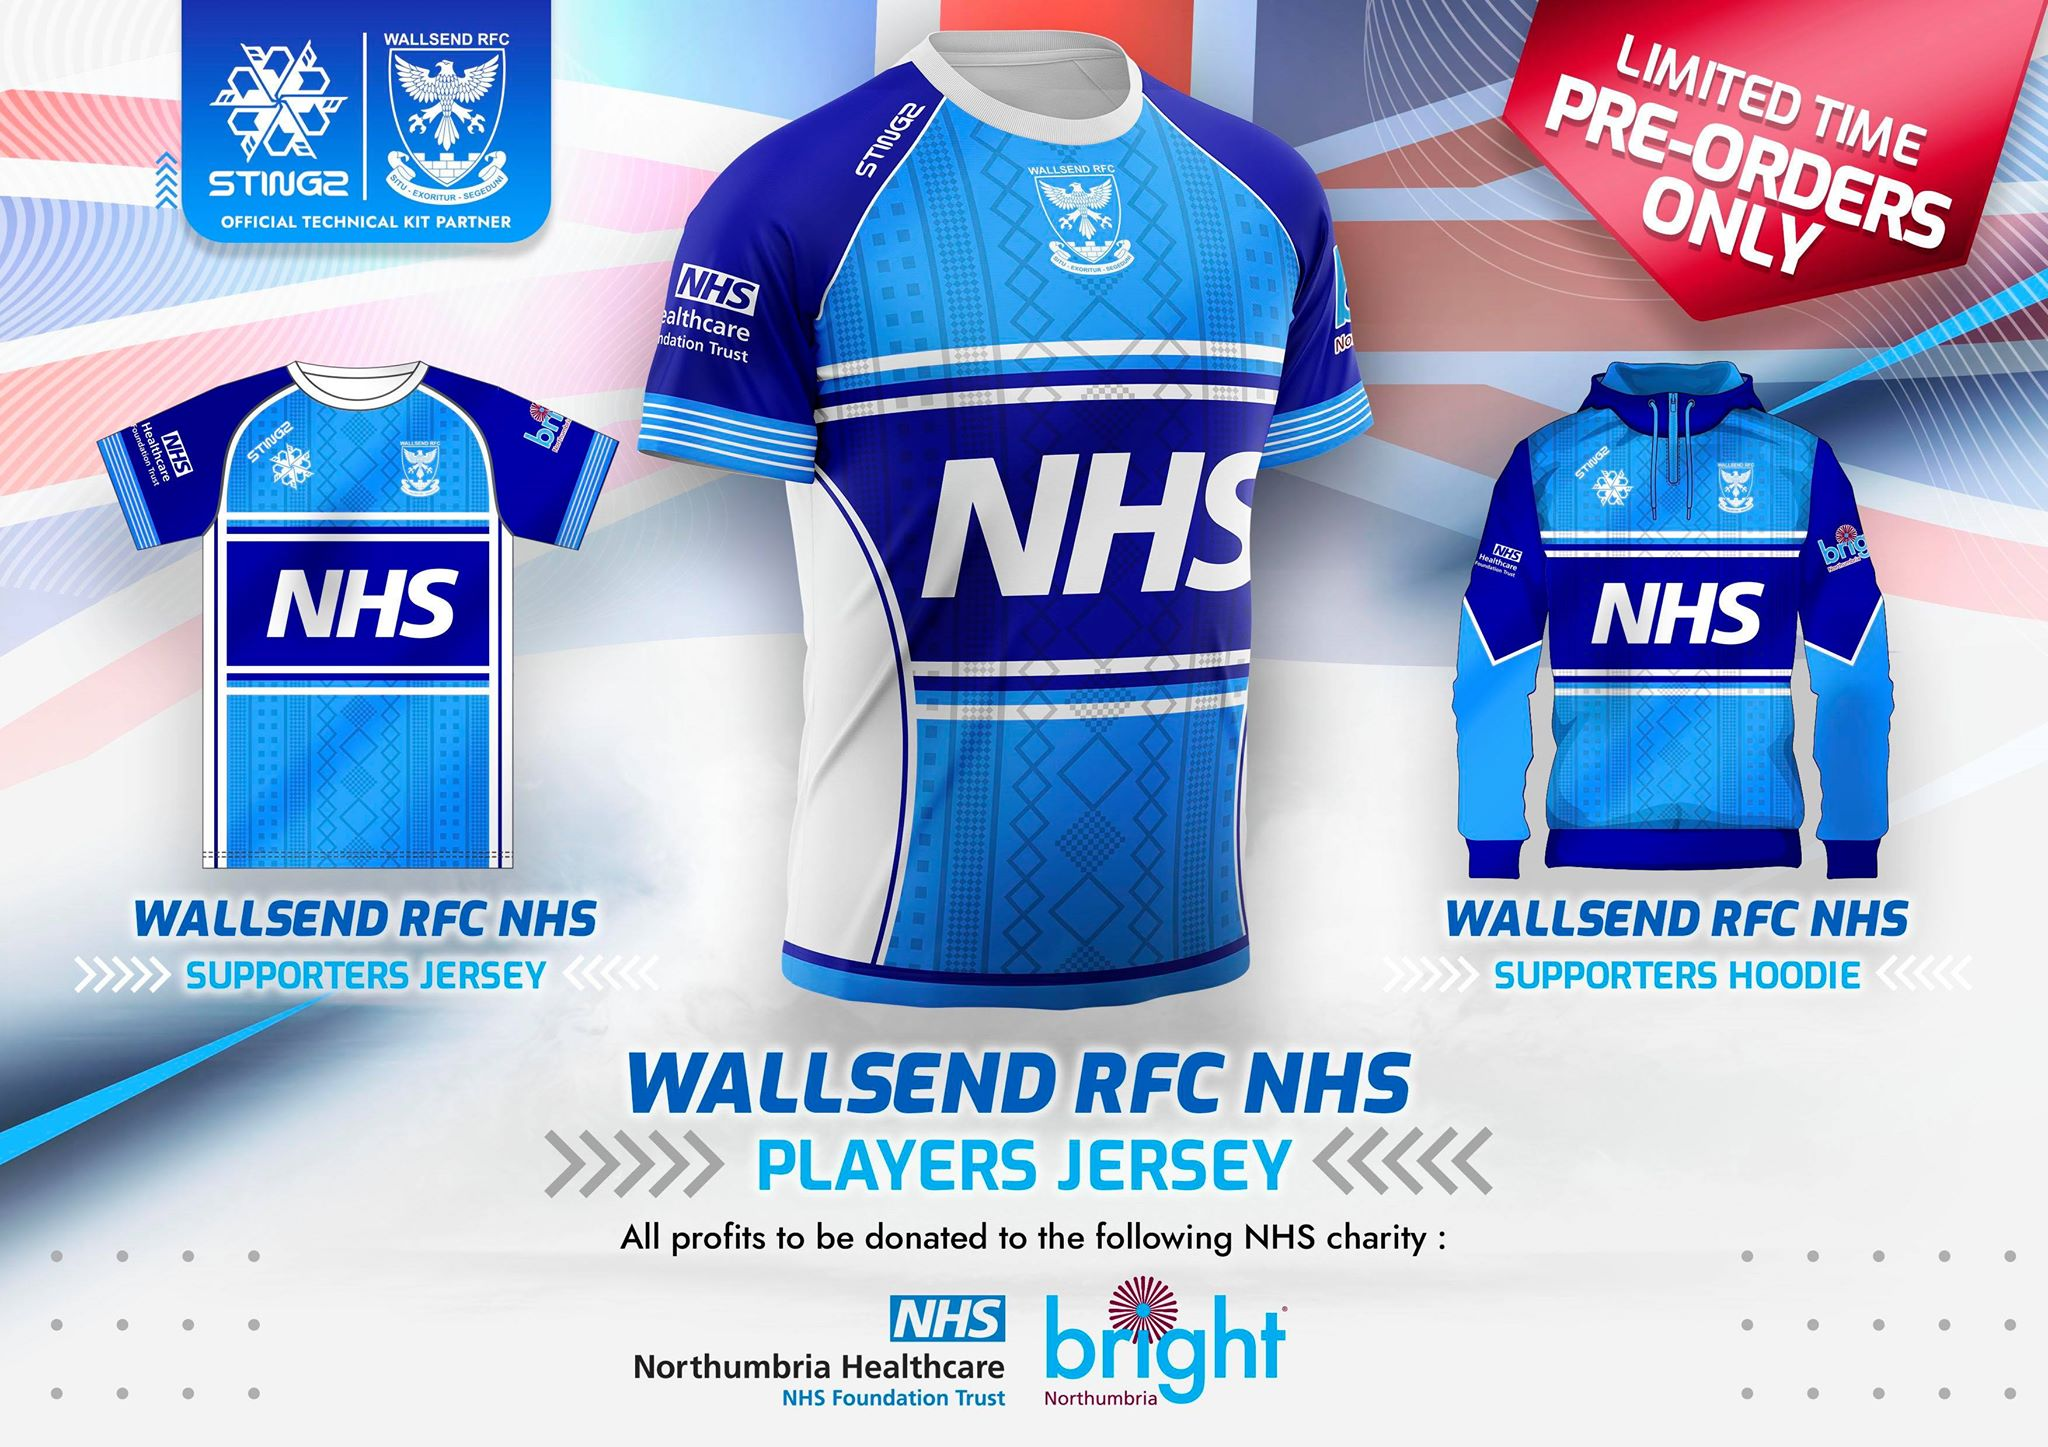 Wallsend Rugby Club are extremely proud to announce the launch of our  limited edition NHS kit range